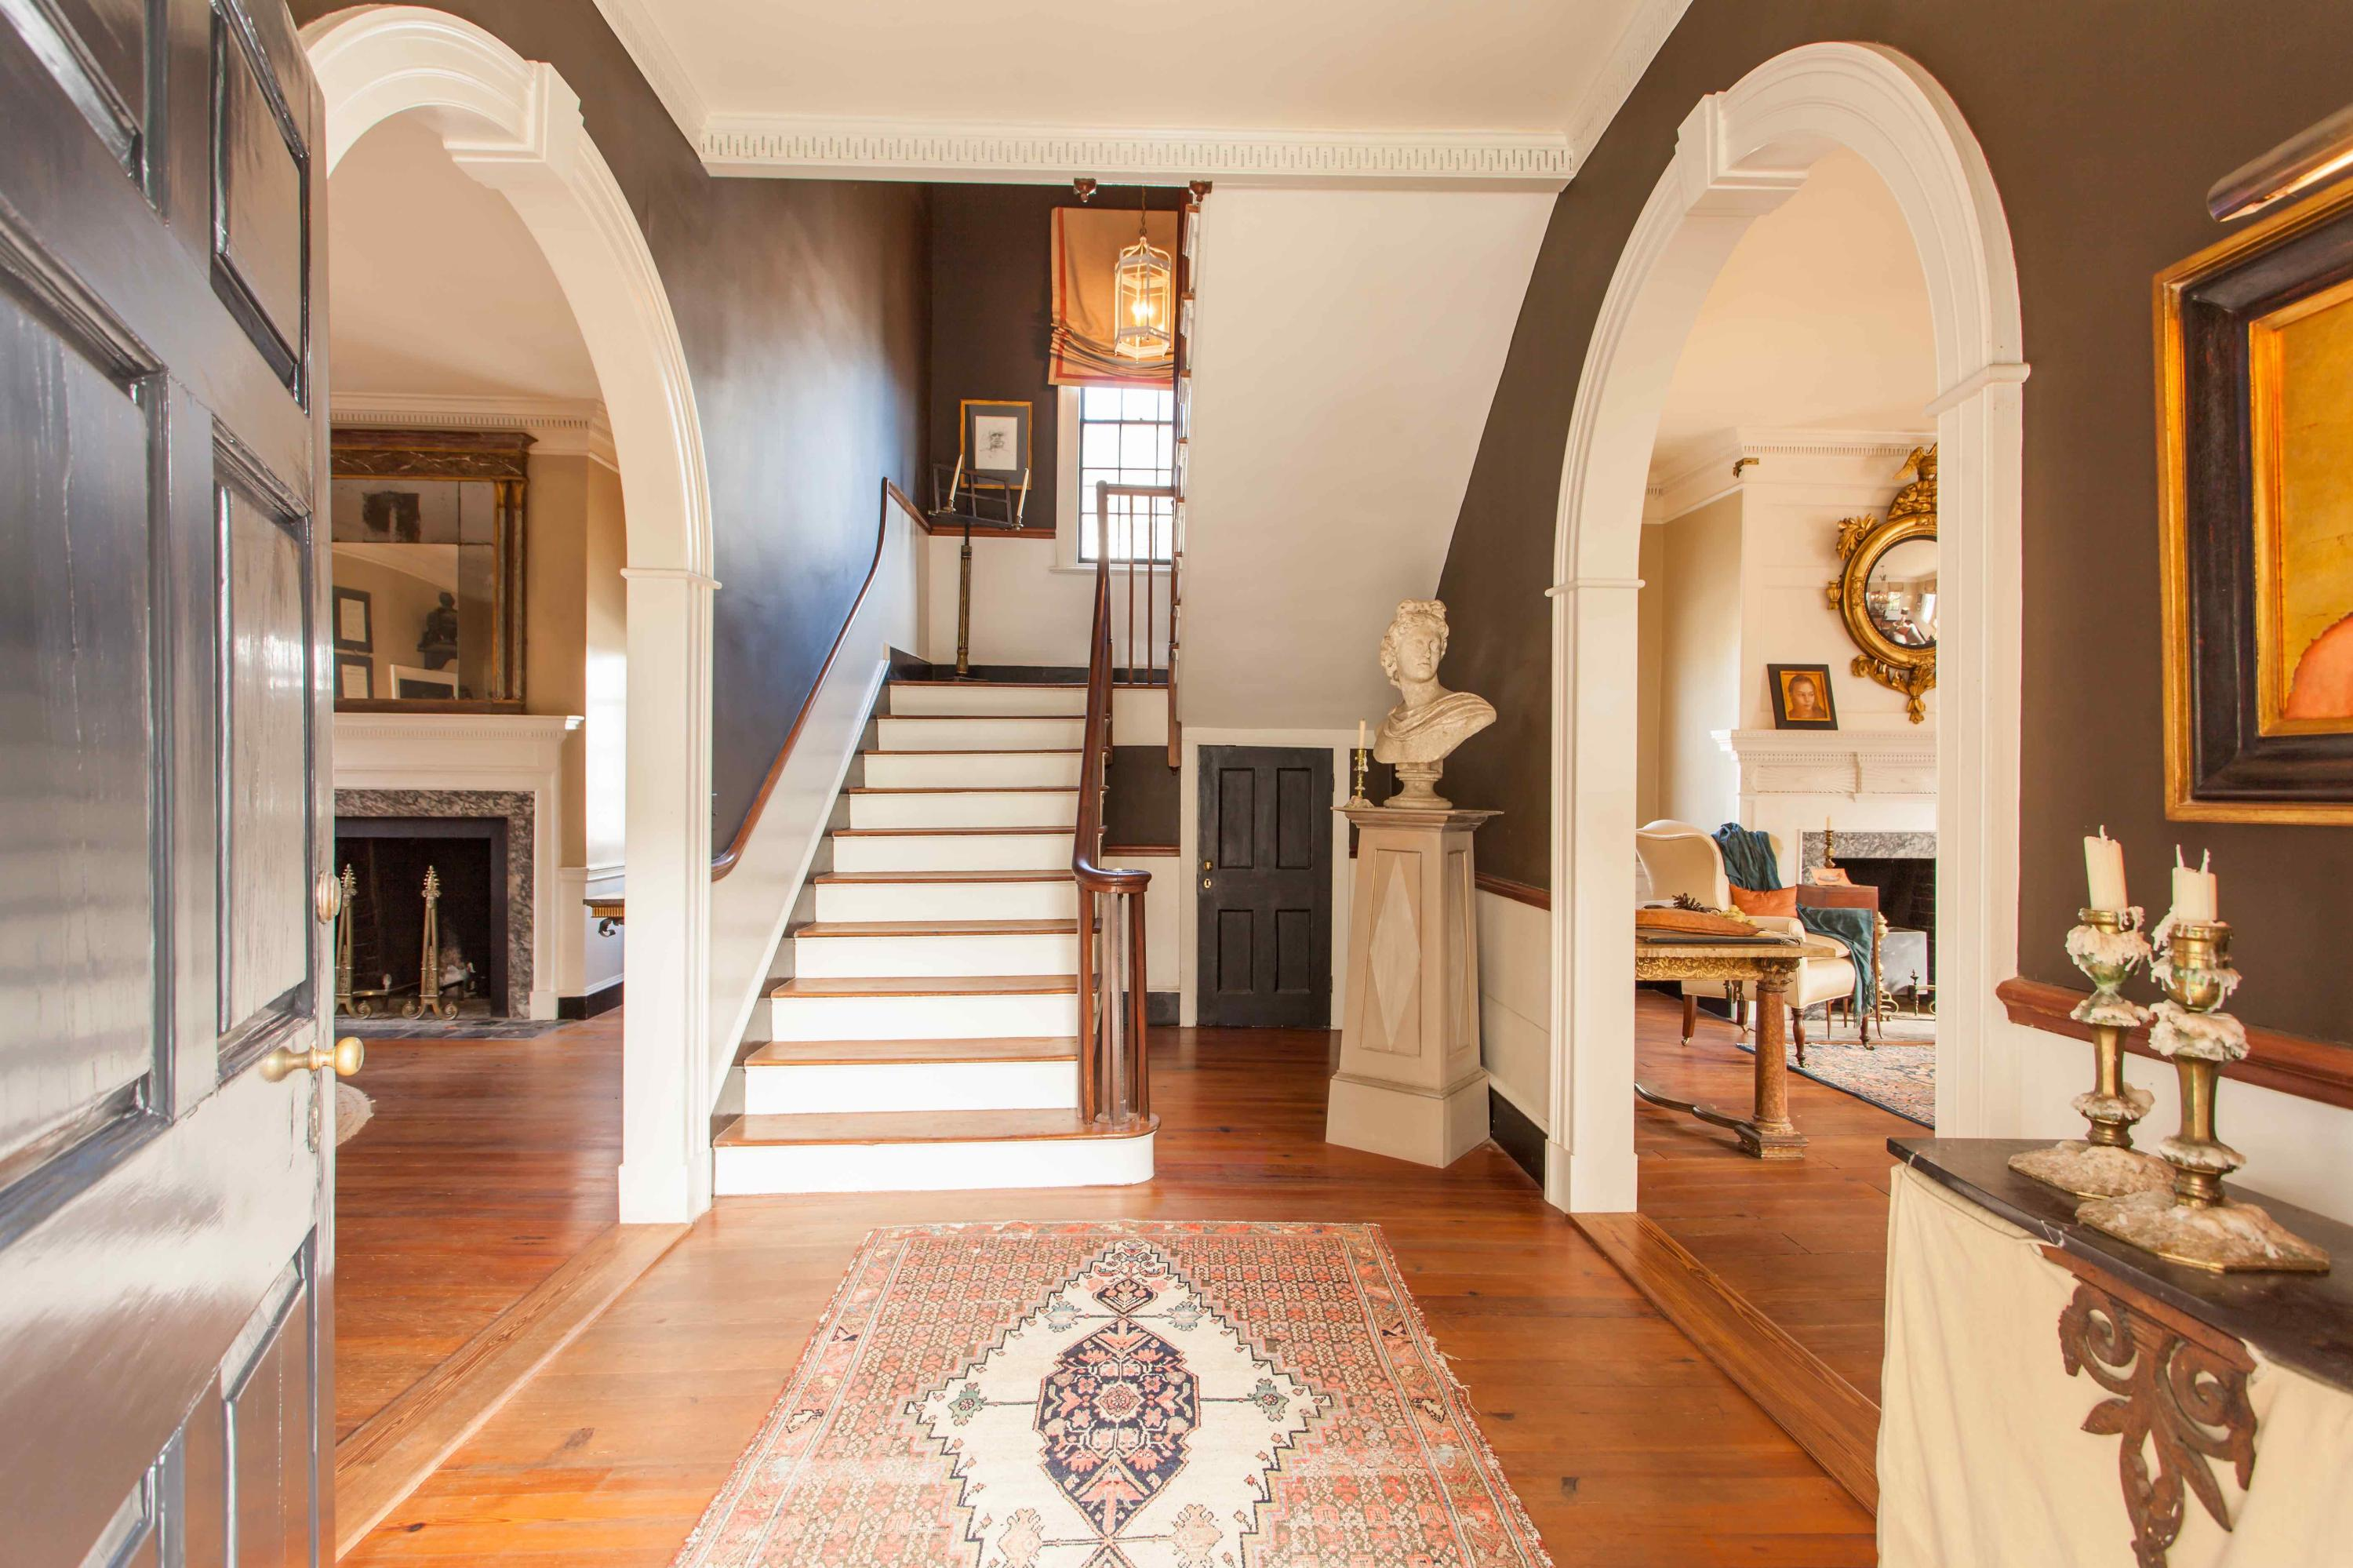 South of Broad Homes For Sale - 58 South Battery, Charleston, SC - 50